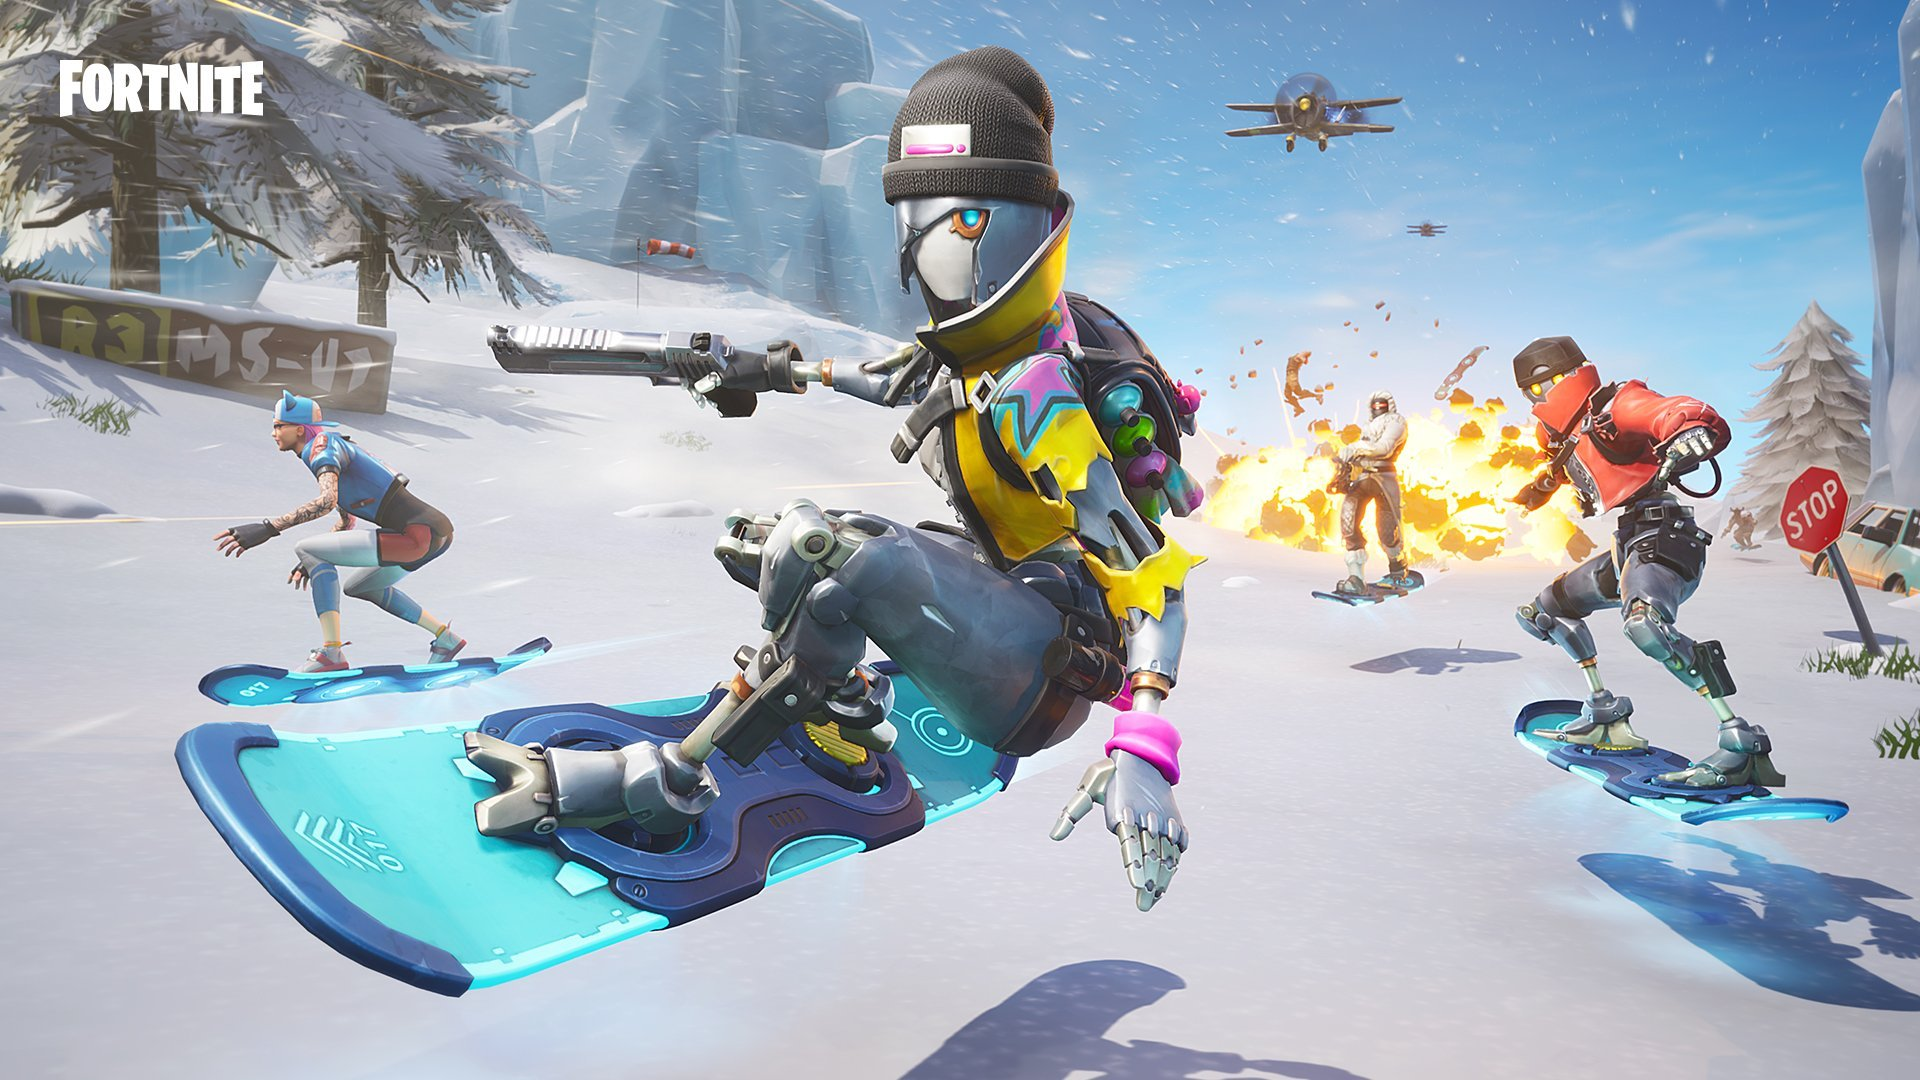 I hope this is not a battle pass wallpaper FortNiteBR 1920x1080